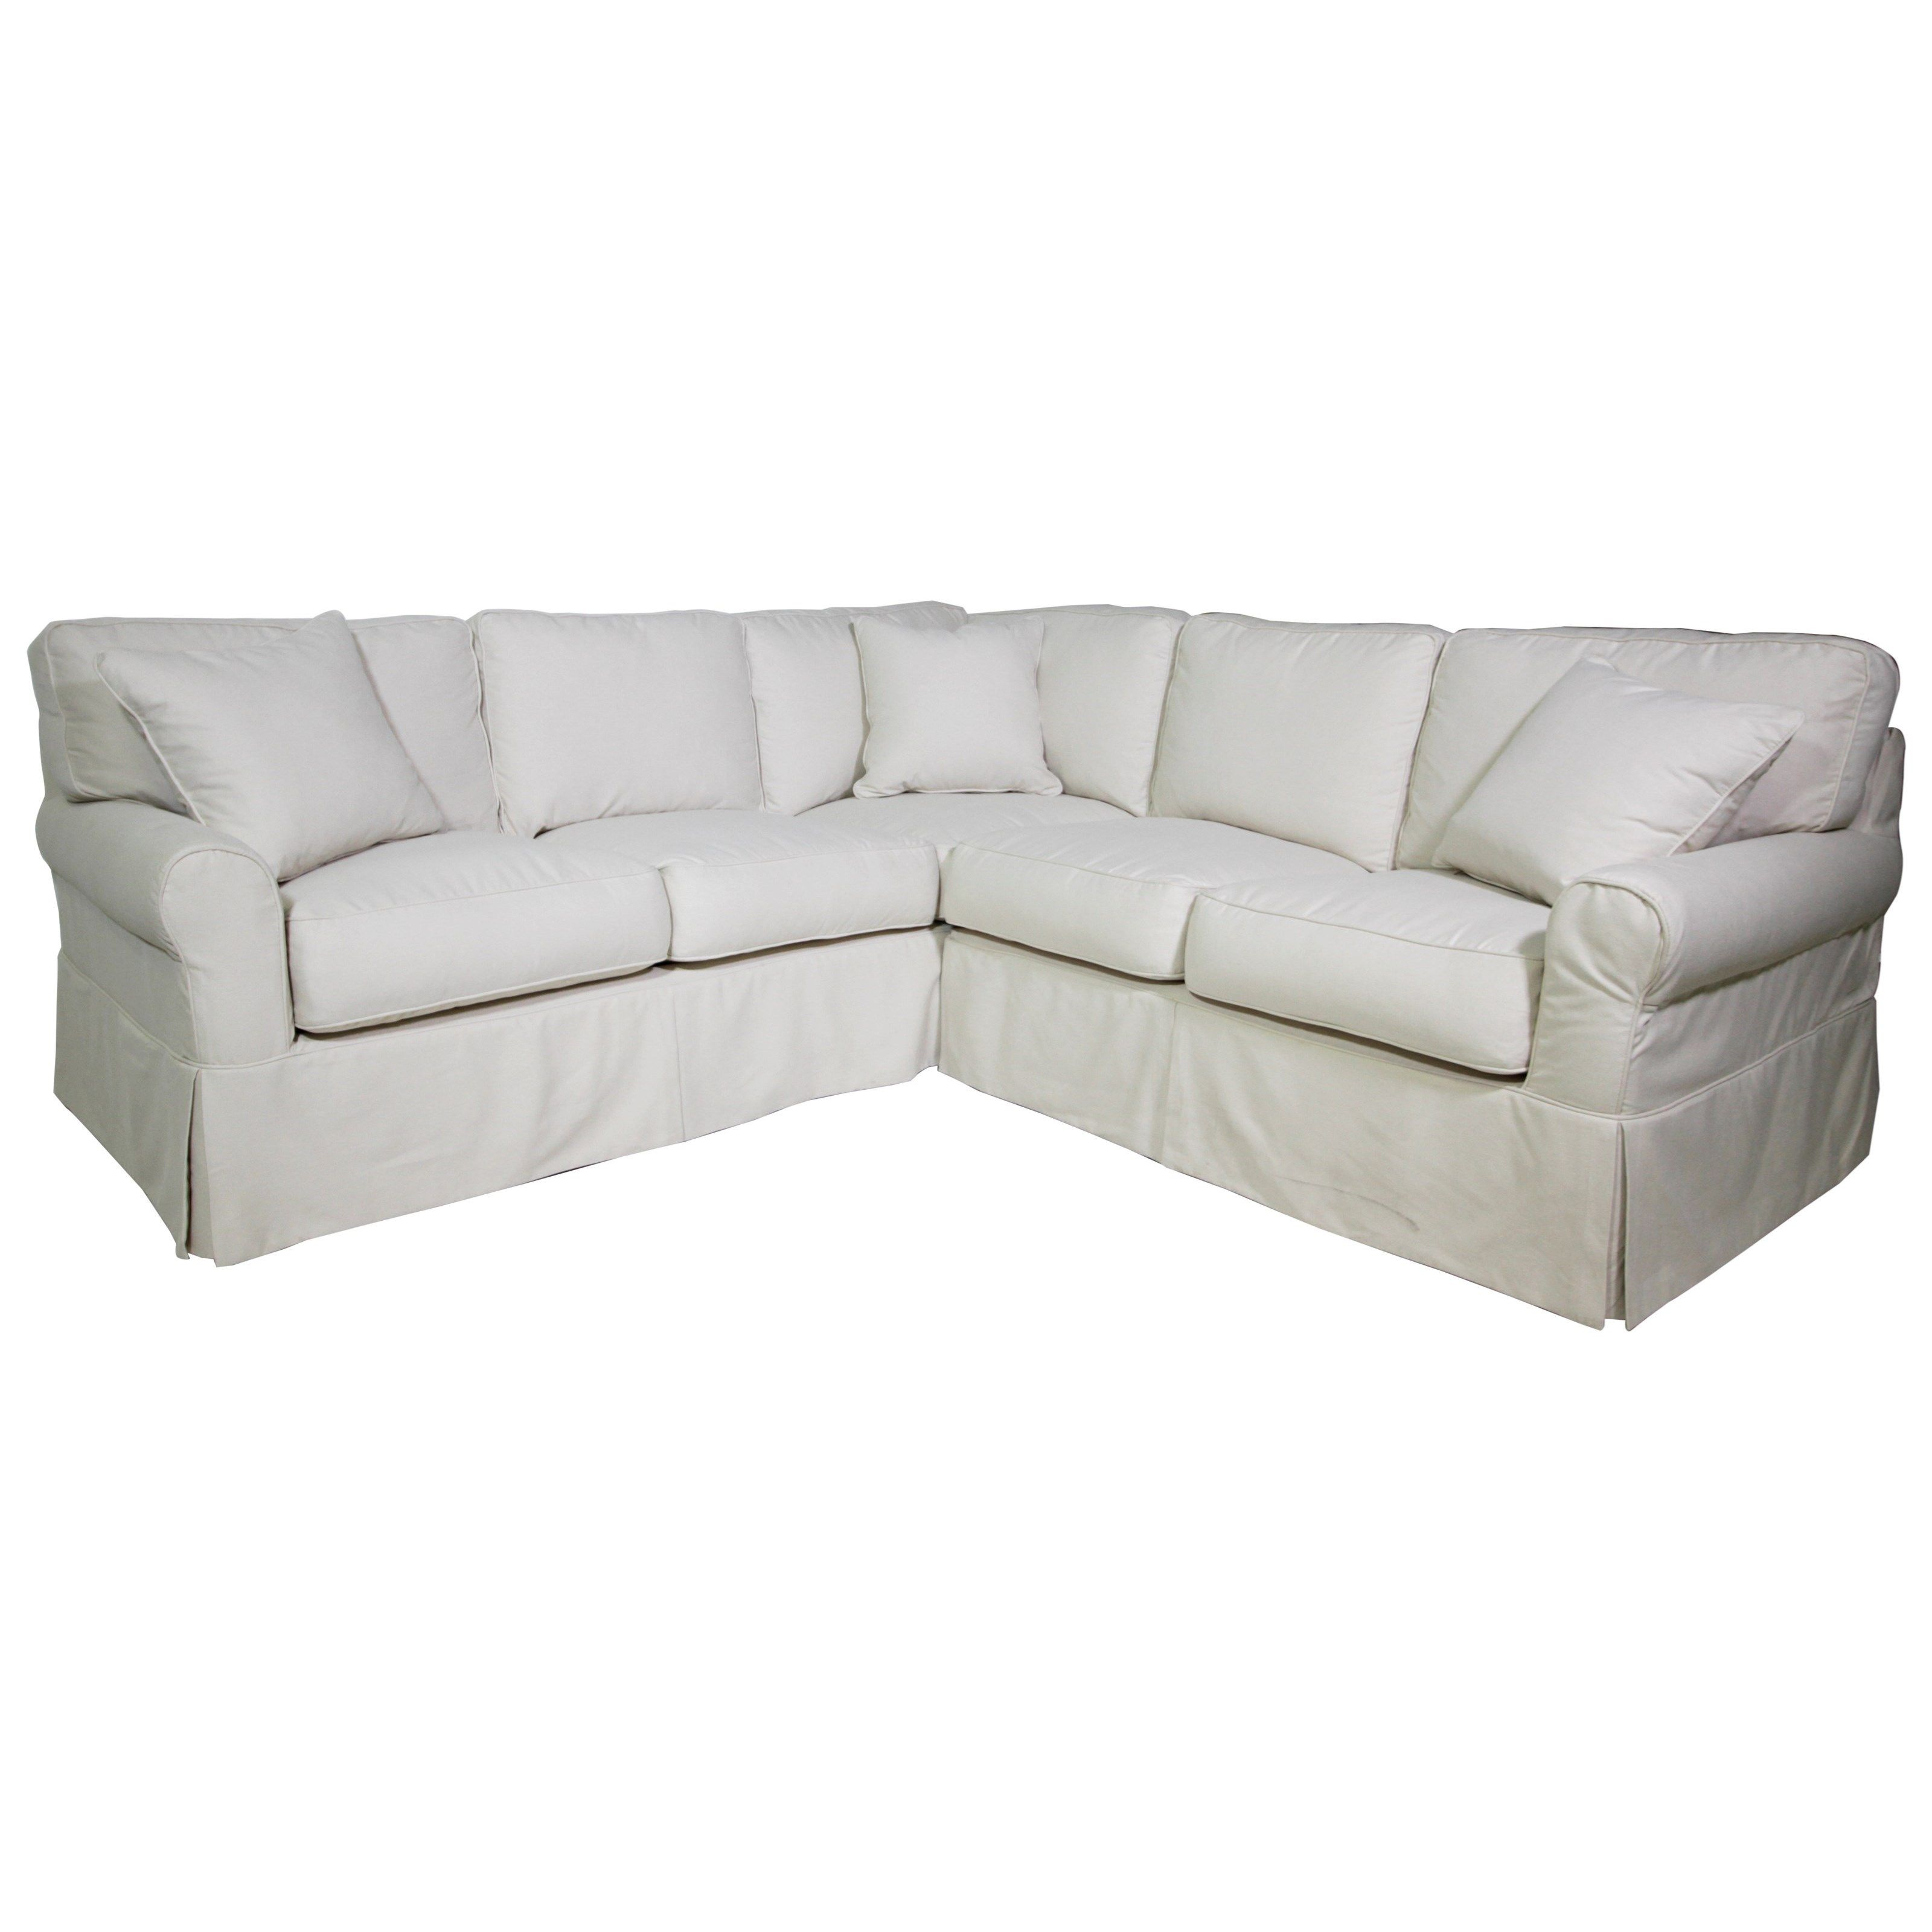 Fleming Sectional By Synergy Home Furnishings At Homeworld Furniture Sectional Furniture Furnishings